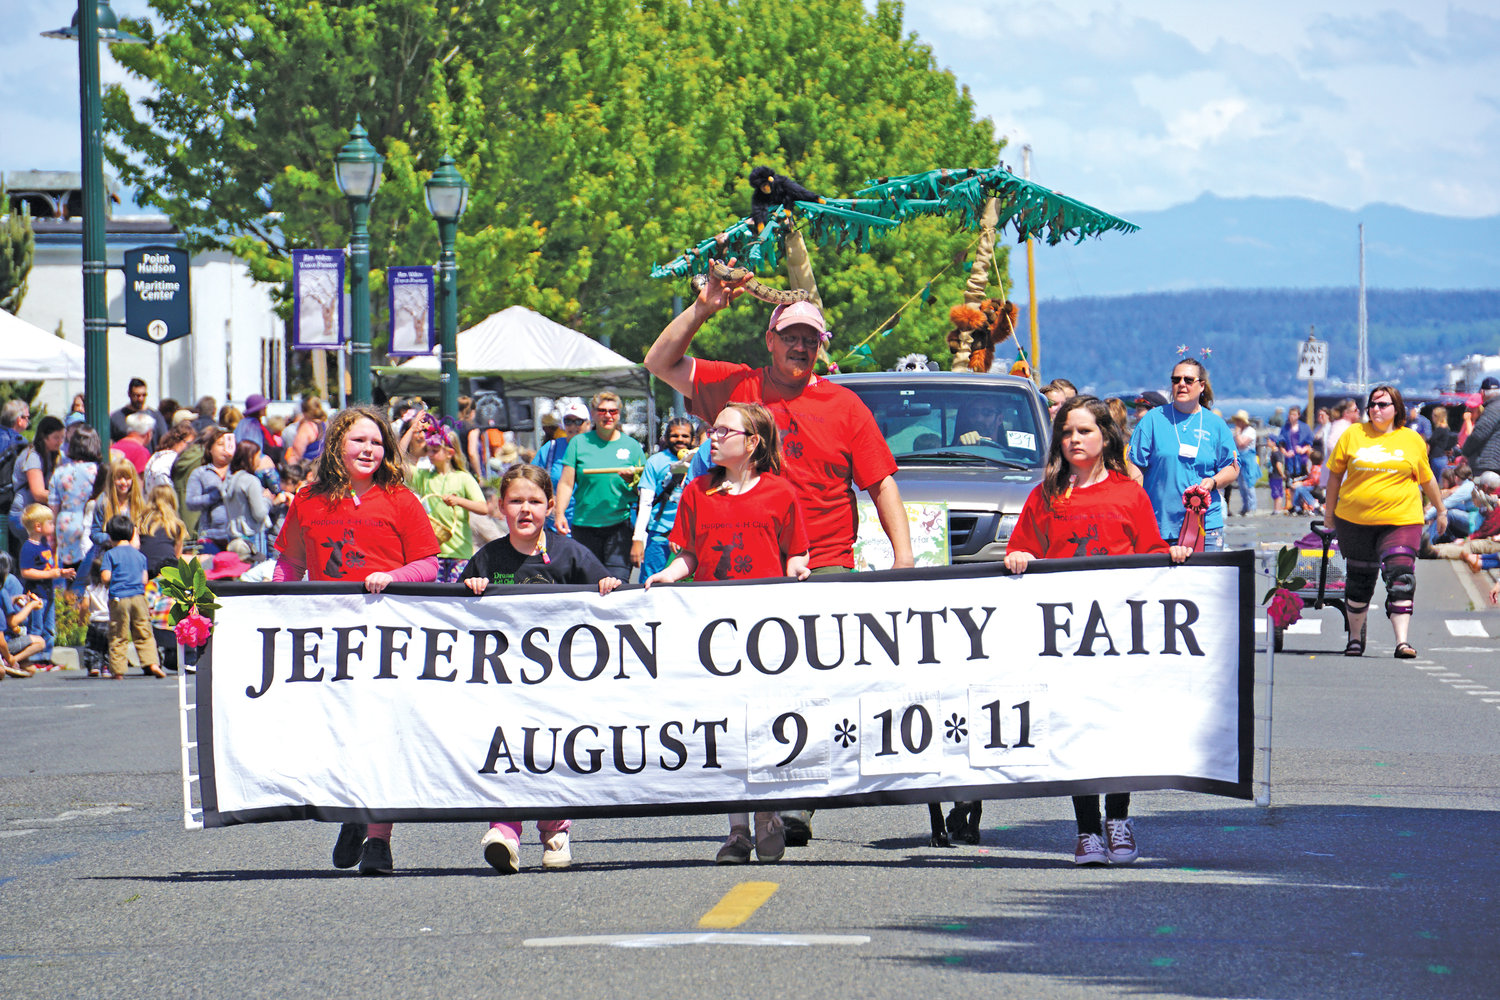 Jefferson County 4H members carry the Jefferson County Fair banner down the parade route.